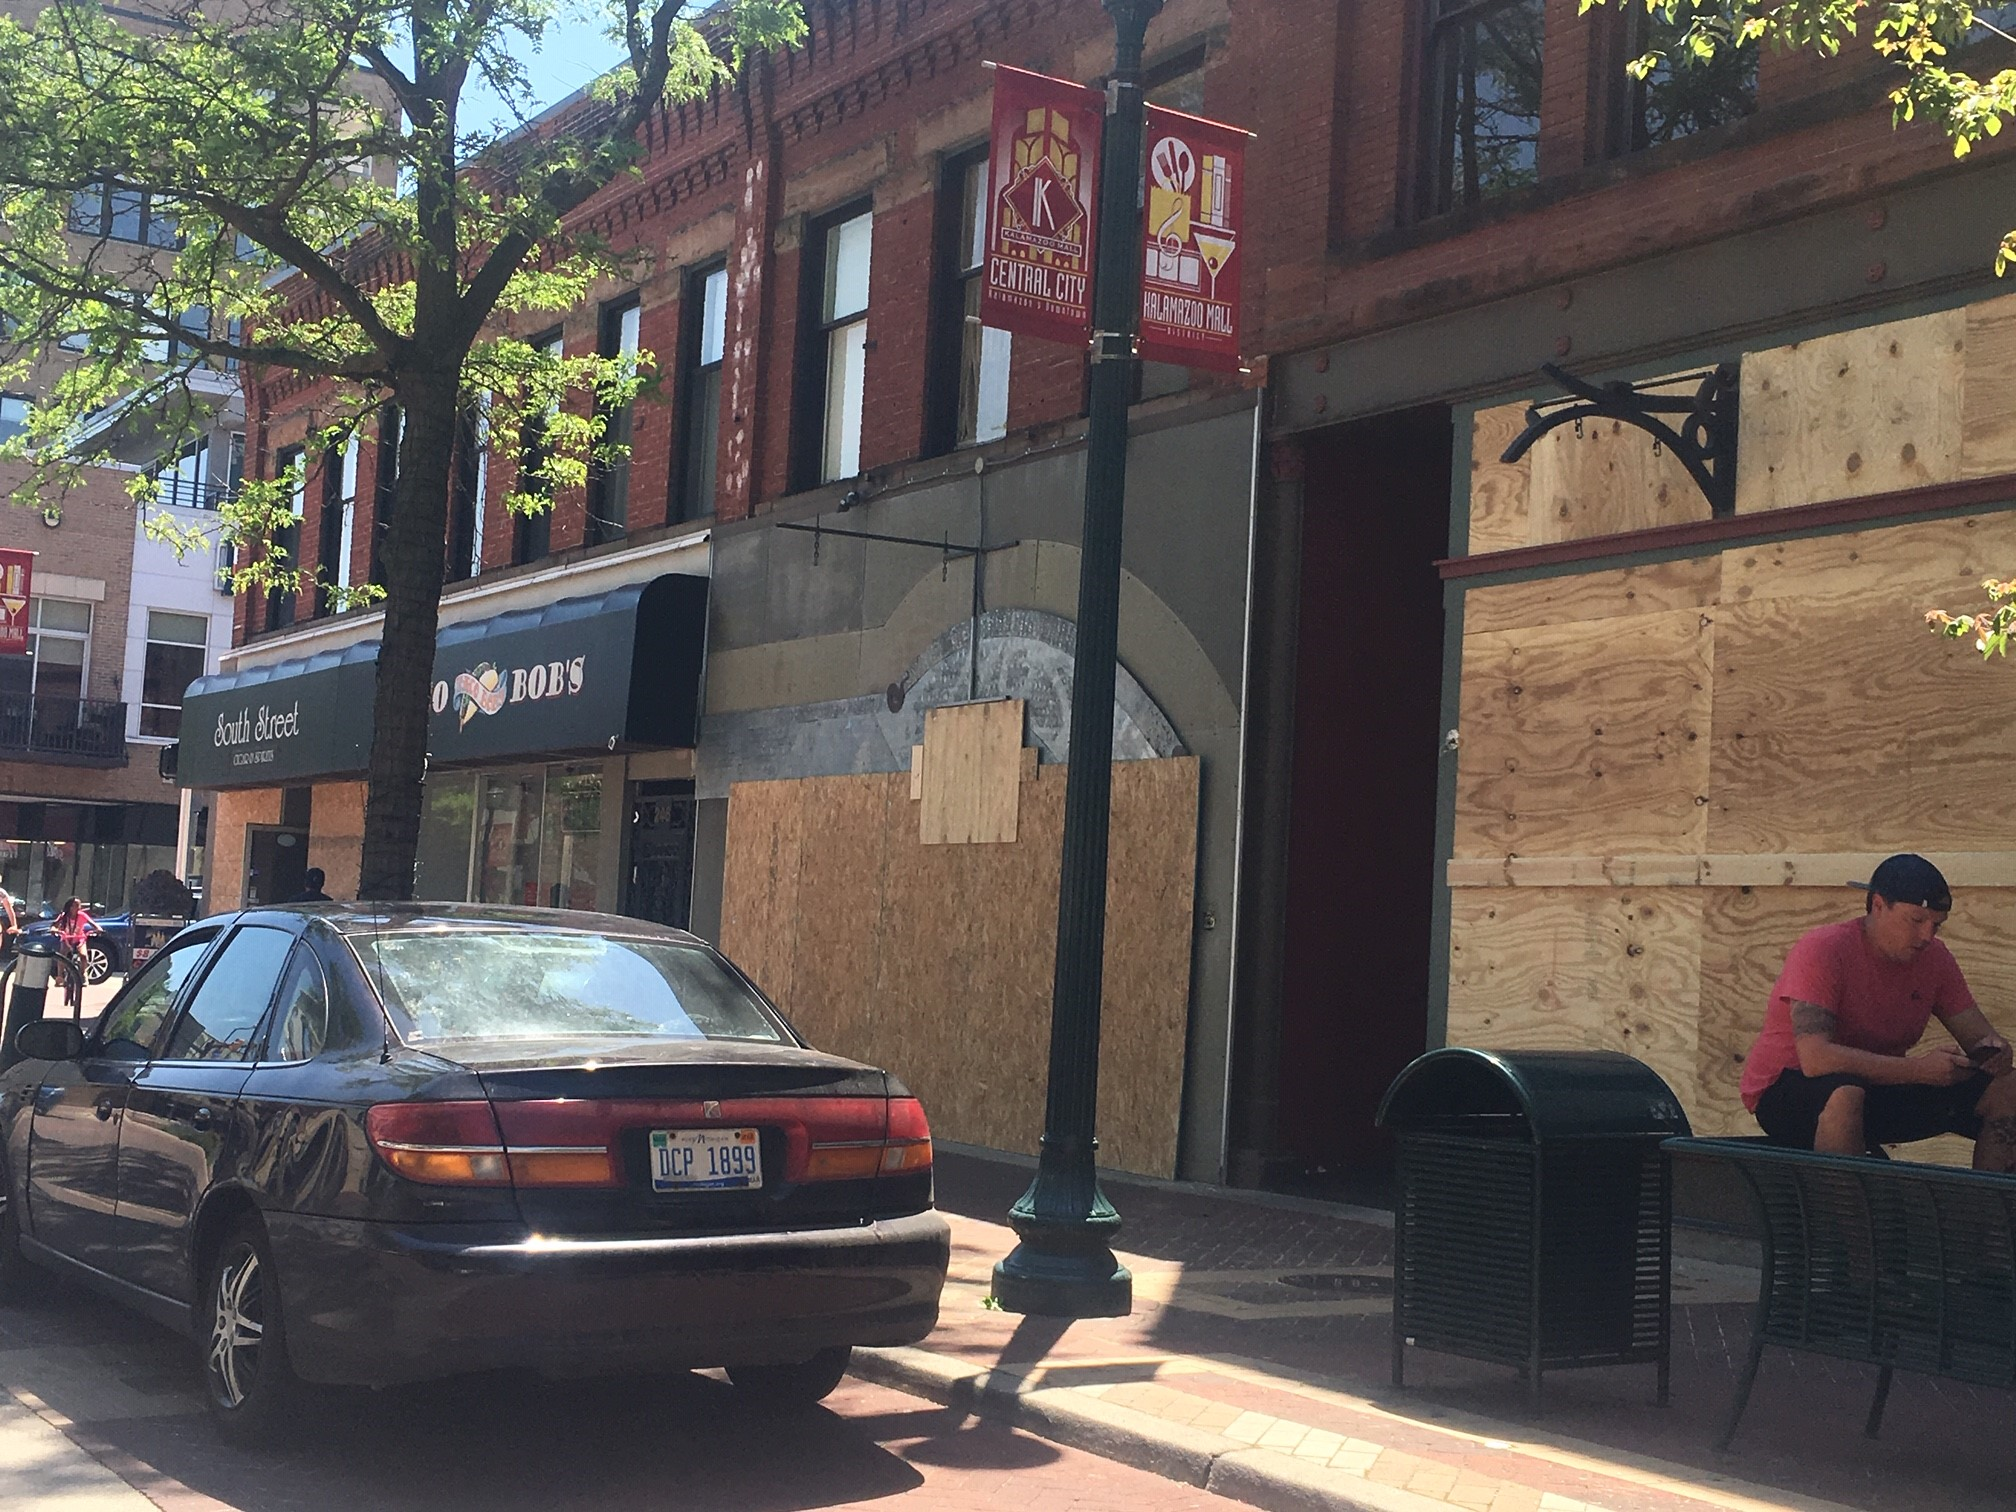 Downtown Kalamazoo businesses begin boarding up windows and doors Tuesday, June 2, 2020, after the city declared it will enforce a curfew starting at 7 p.m. (WWMT/Mike Krafcik)